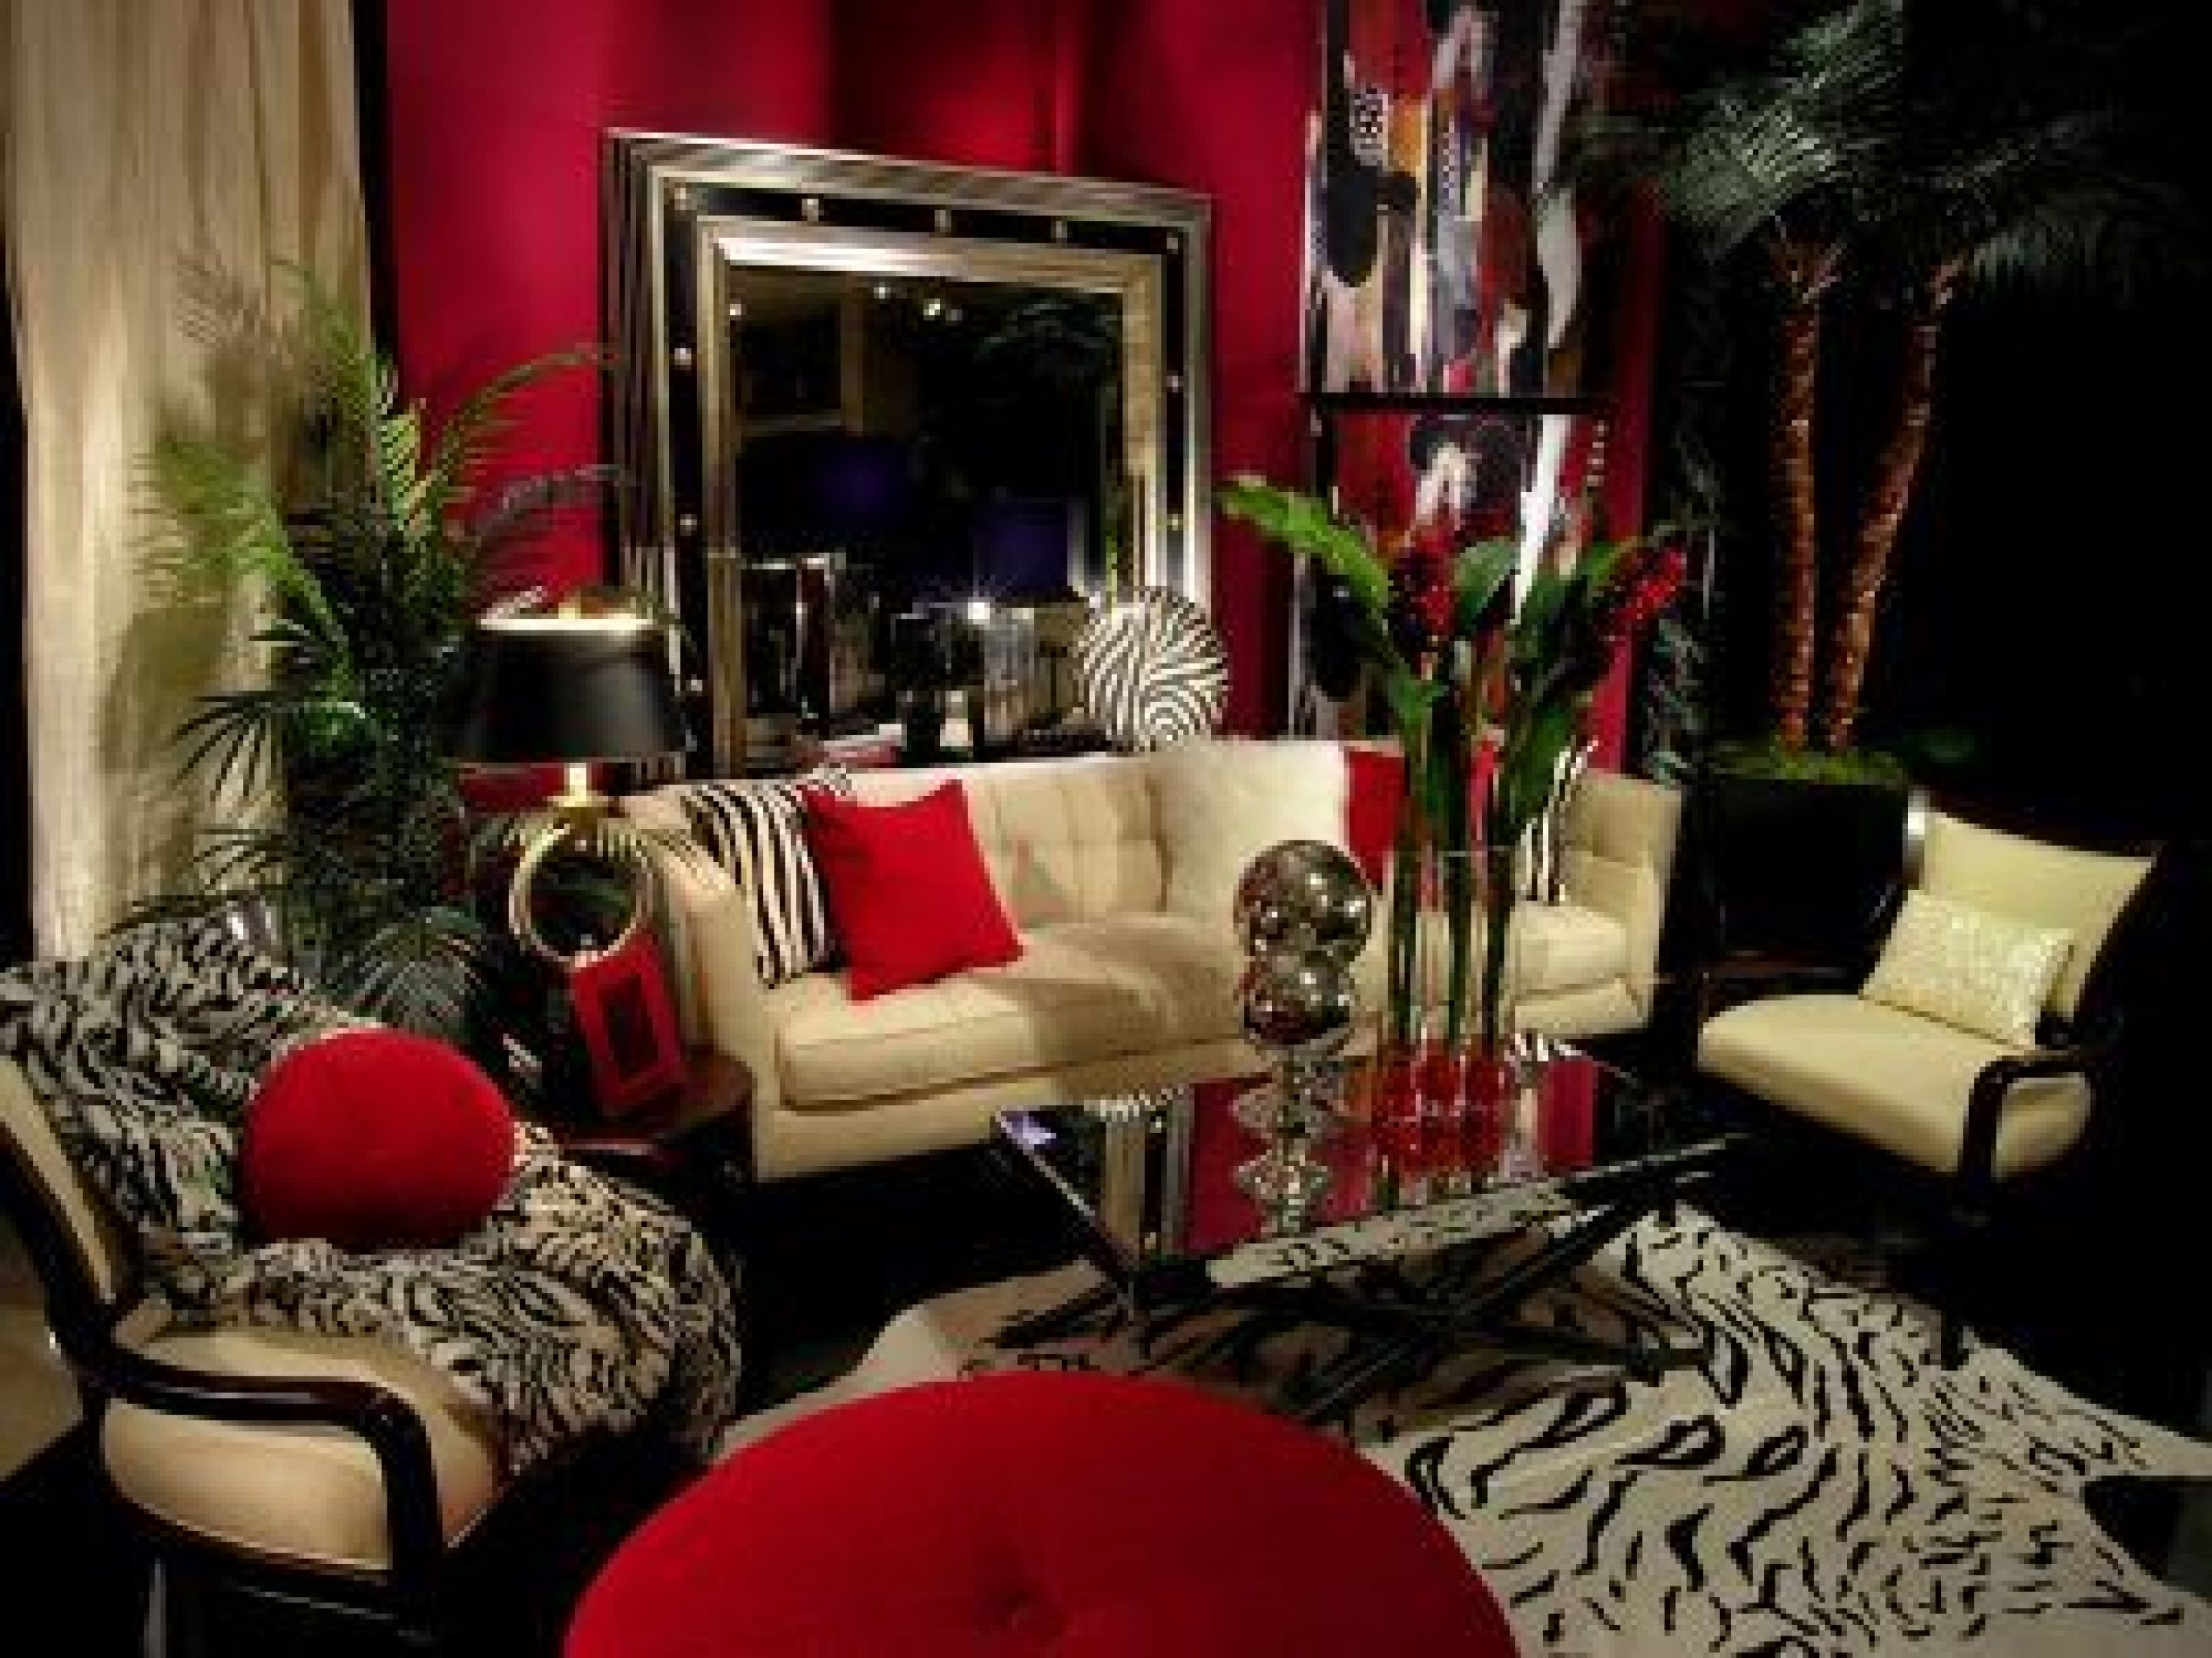 Black Red Bedroom Jungle - Google Search